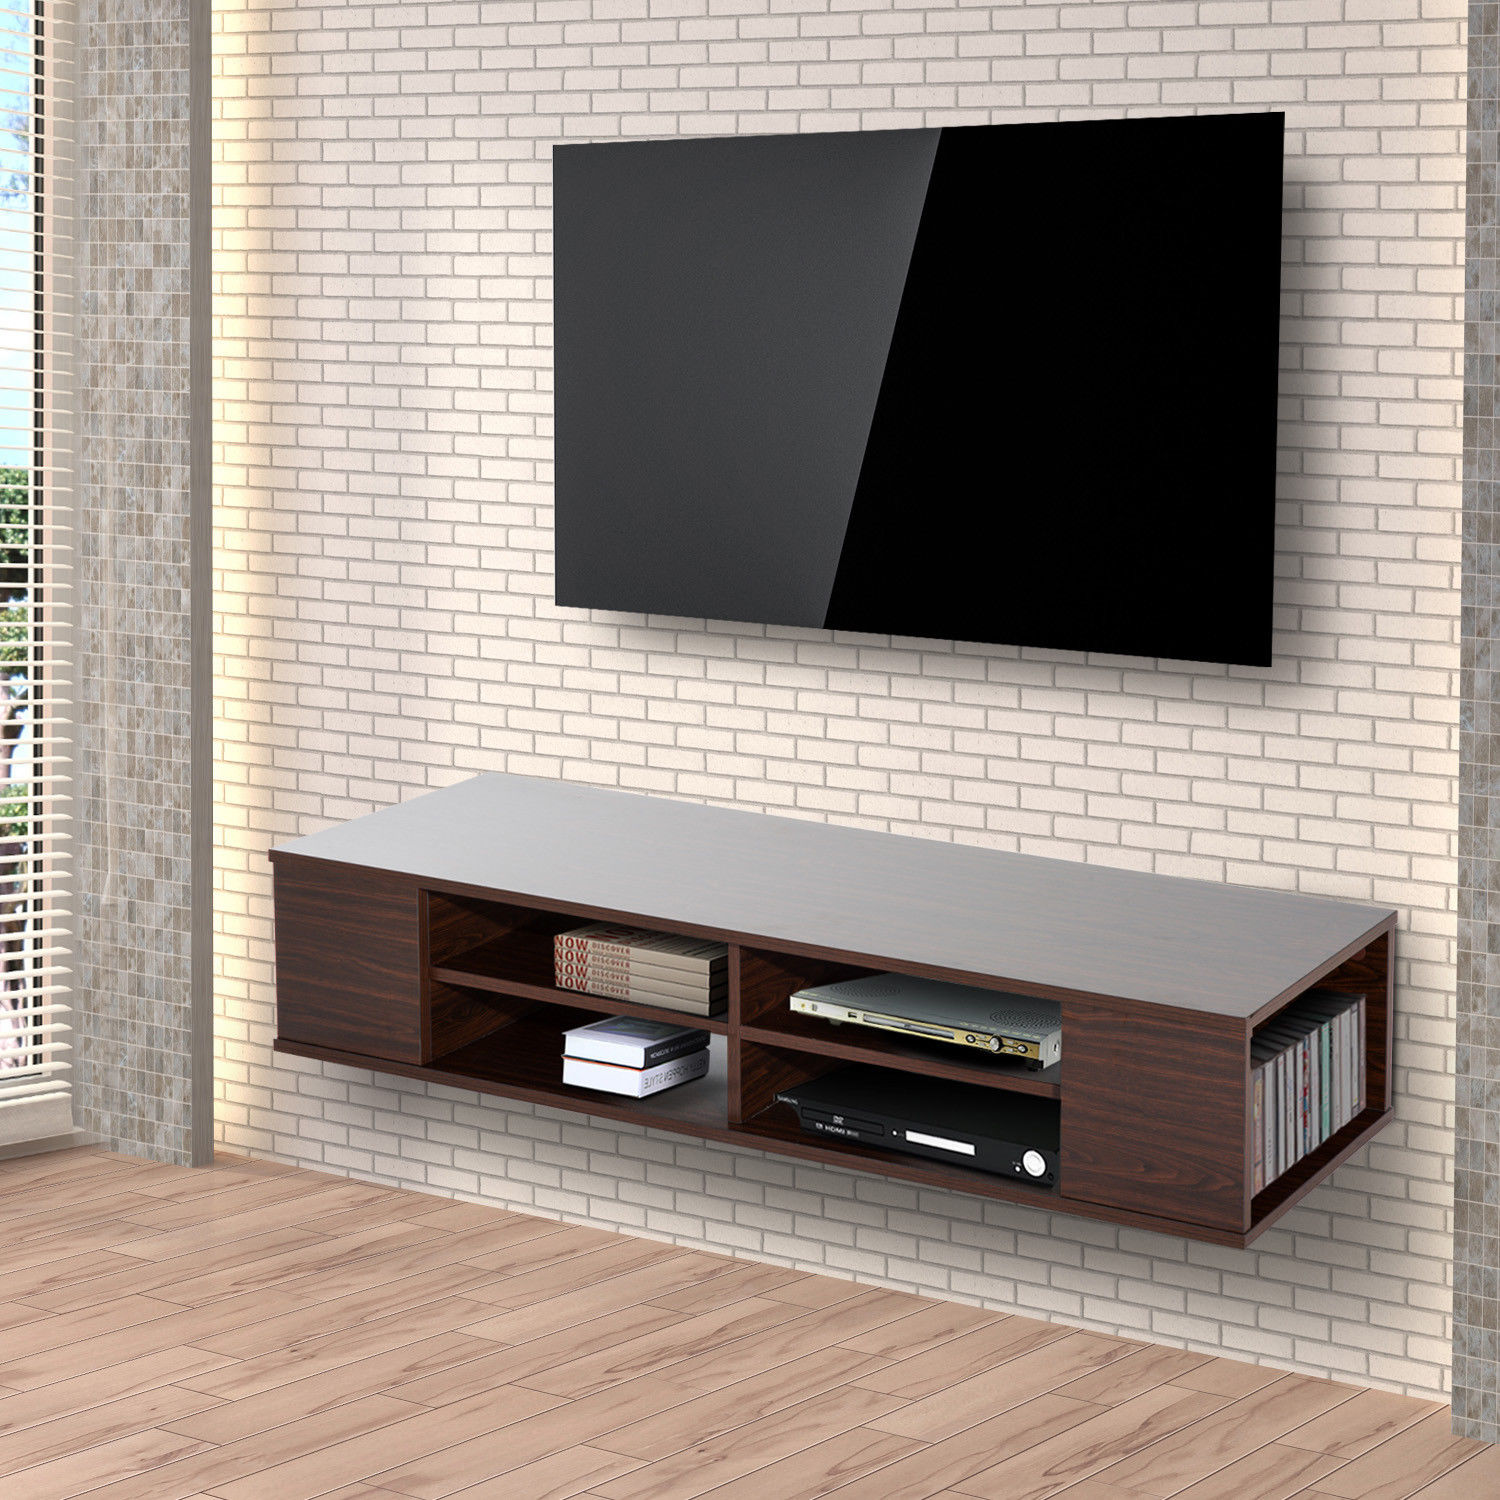 Floating Wall Mounted Tv Unit Modern 47 Floating Wall Mounted Tv Stand Unit Cabinet